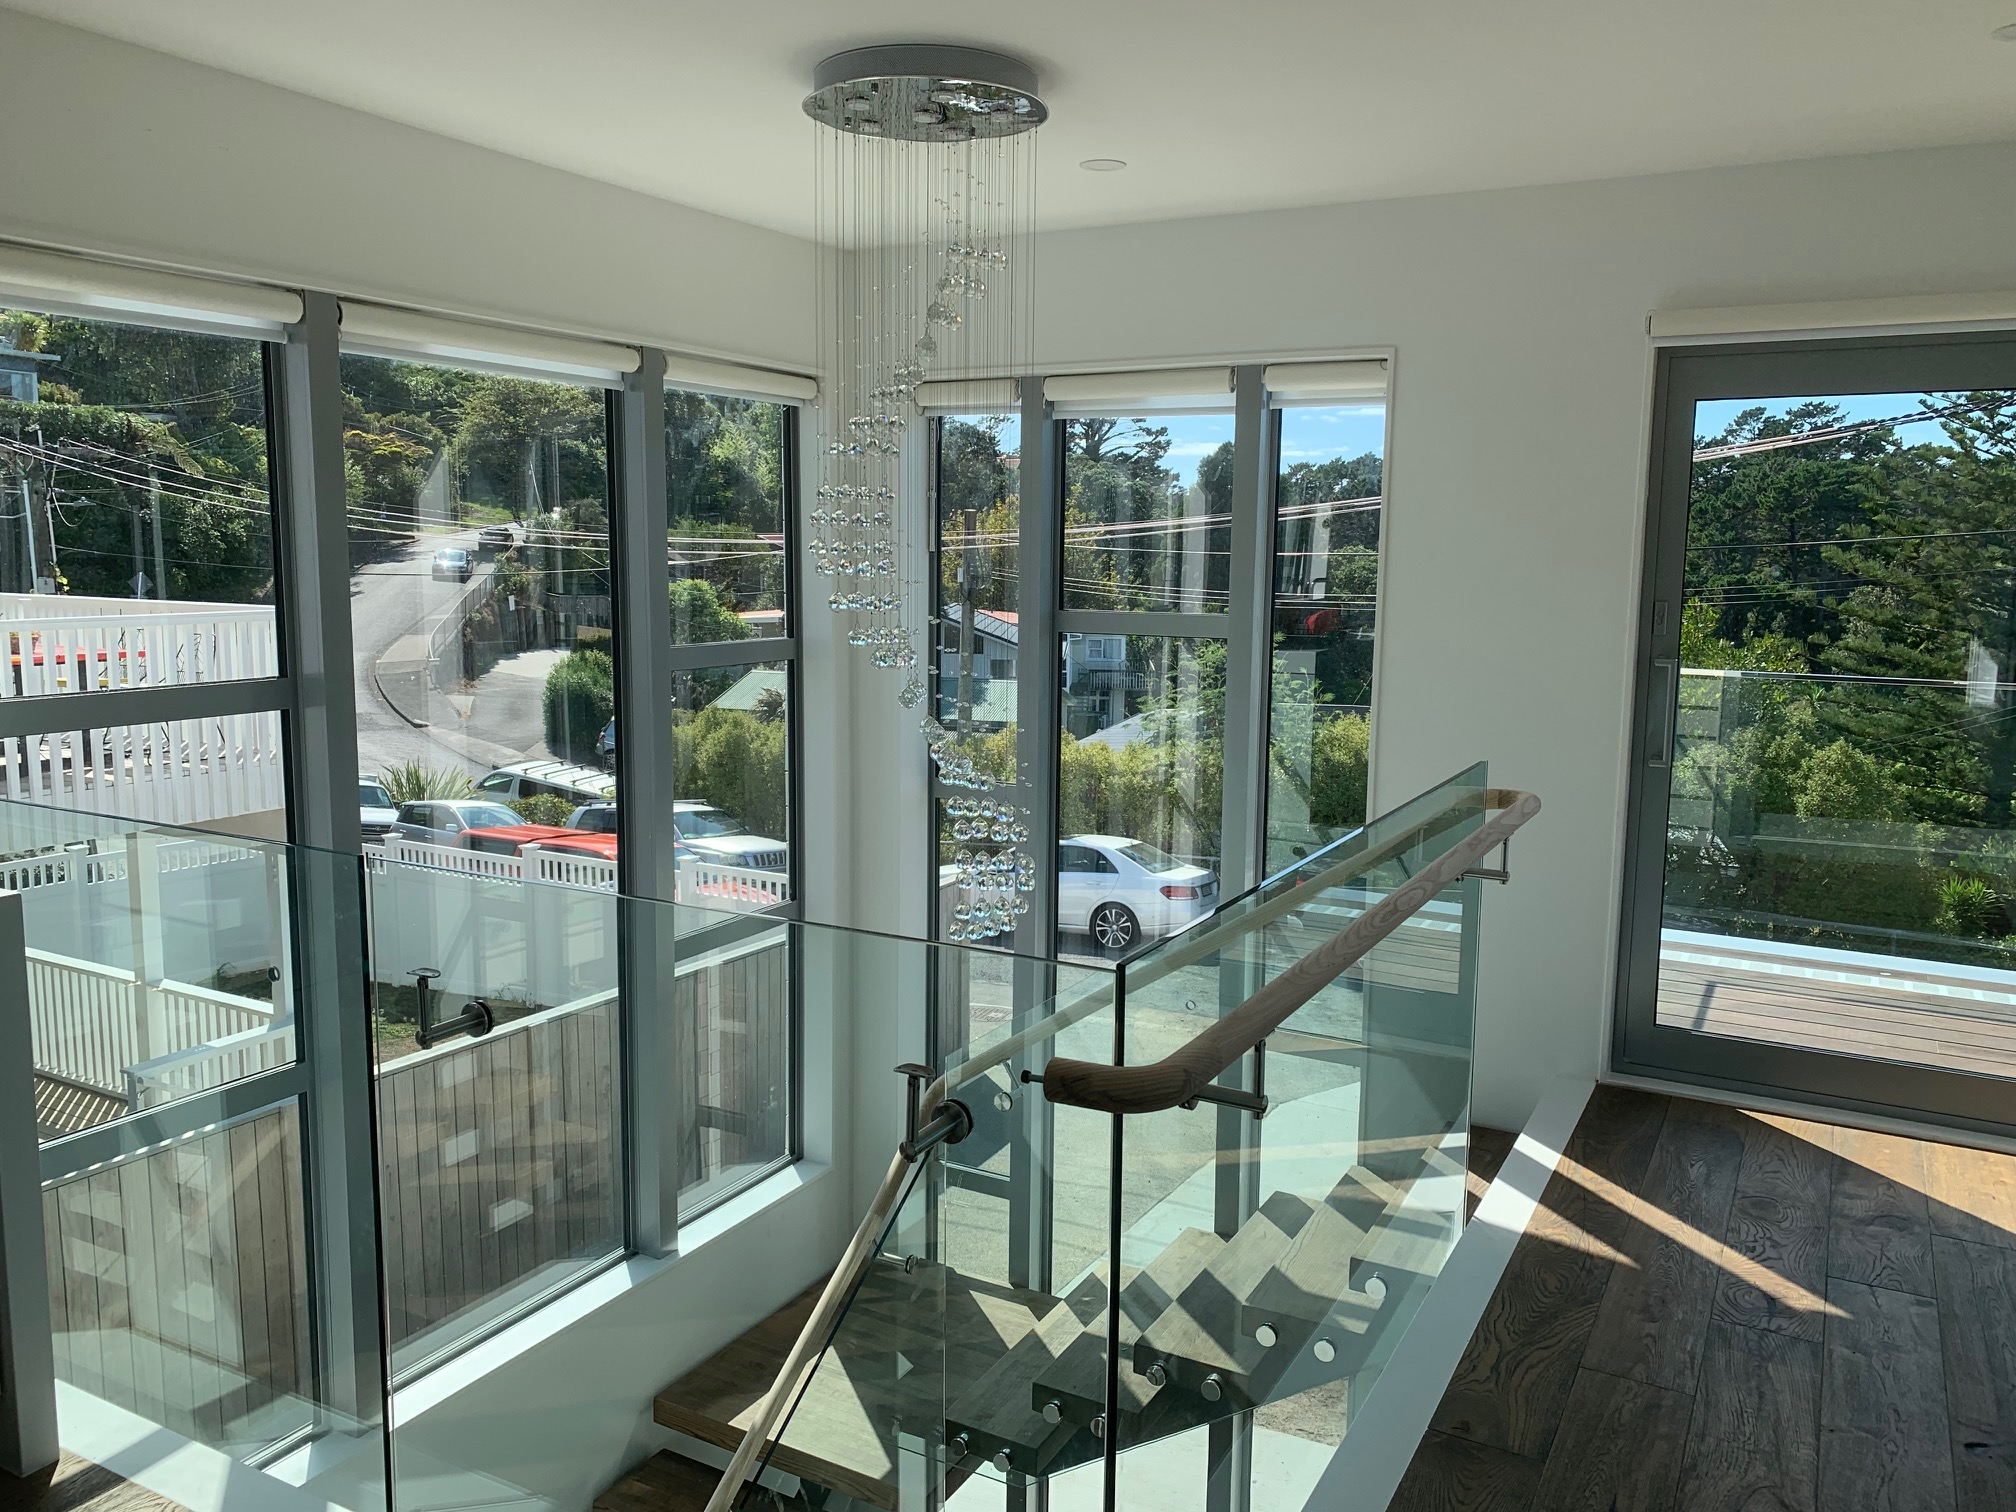 Motorised roller blinds project includes of  using the iSW25LE Li-ion battery powered motors, iSW25CE 12V DC motors, solar charge panels and battery wands for stairways high window